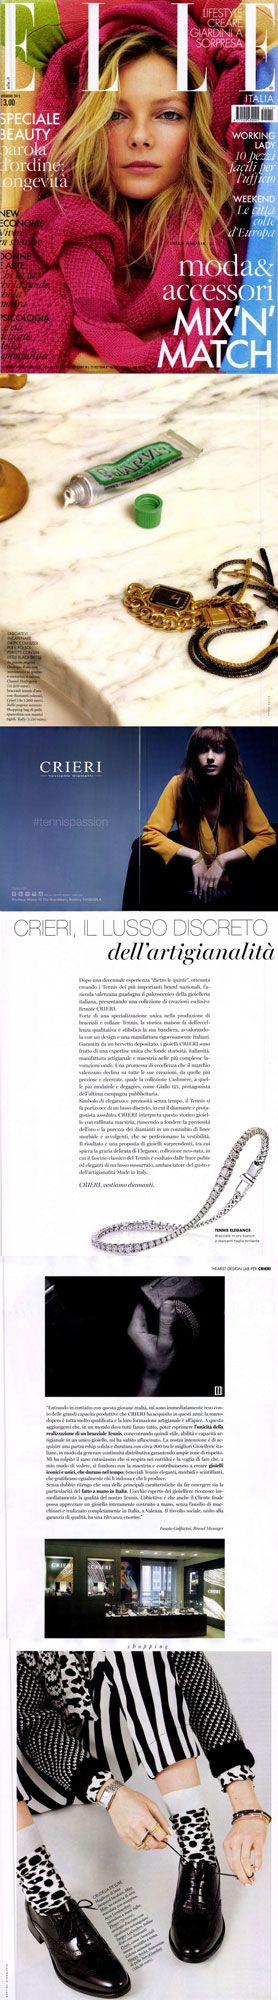 ❖Visto su ‪#ELLE – 01/11/2015❖ #Giallo121‪, #Color, #Elegance e #Spotlight collection #tennis #bracelets #trendy #jewelry #fashion #gold #valenza #crieri #vestiamodiamanti #tennispassion #tennisclub #glamour #chic #lifestyle